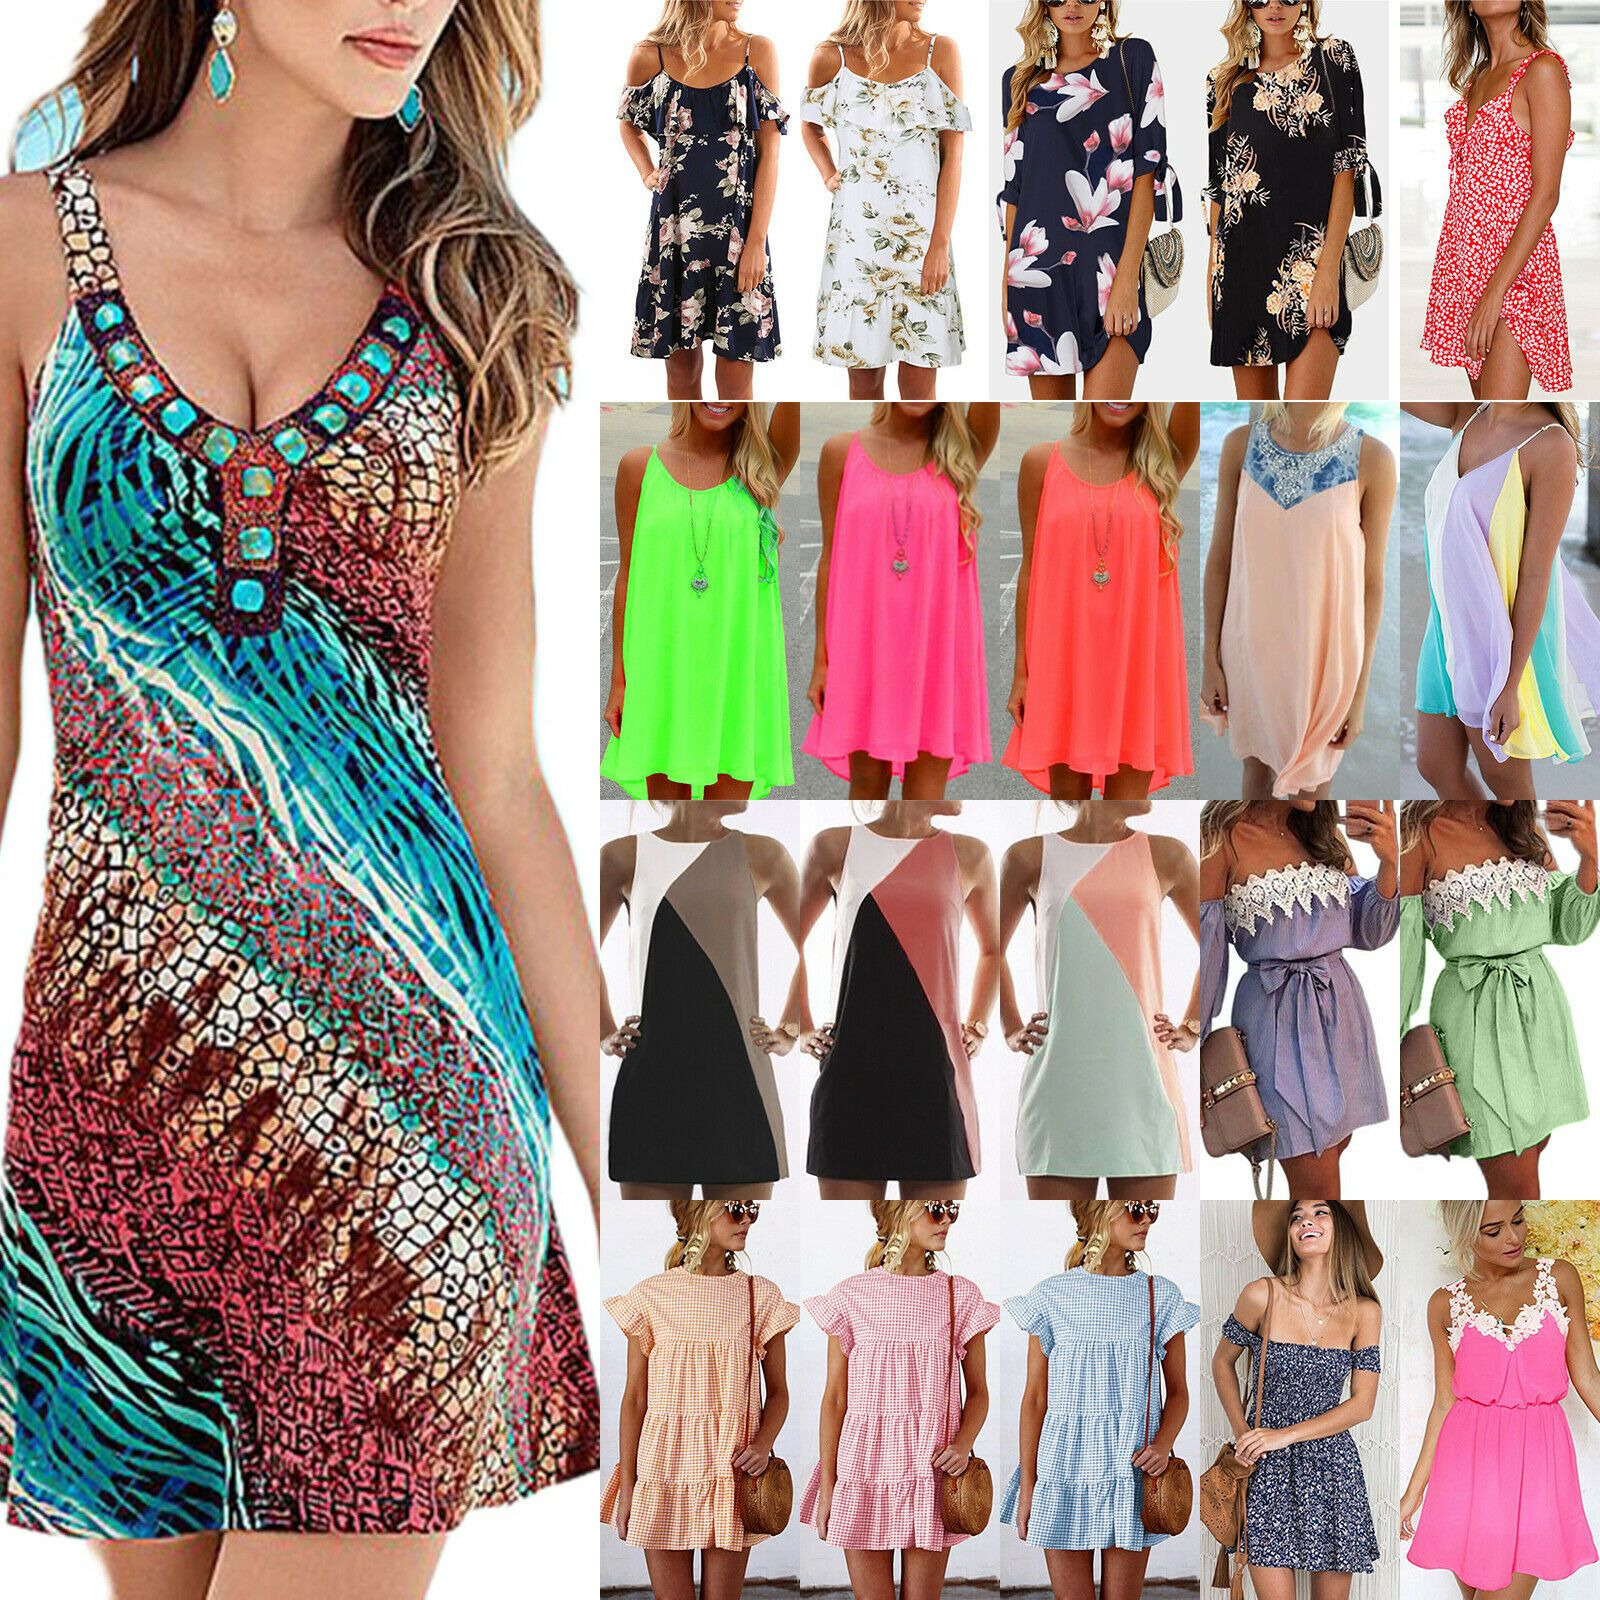 Plus Size Womens Bodycon Evening Party Cocktail Club Midi Dress Summer Casual Plus Size Party Dresses Plus Size Party Dresses Coral Maxi Dresses Coral Dress [ 1600 x 1600 Pixel ]